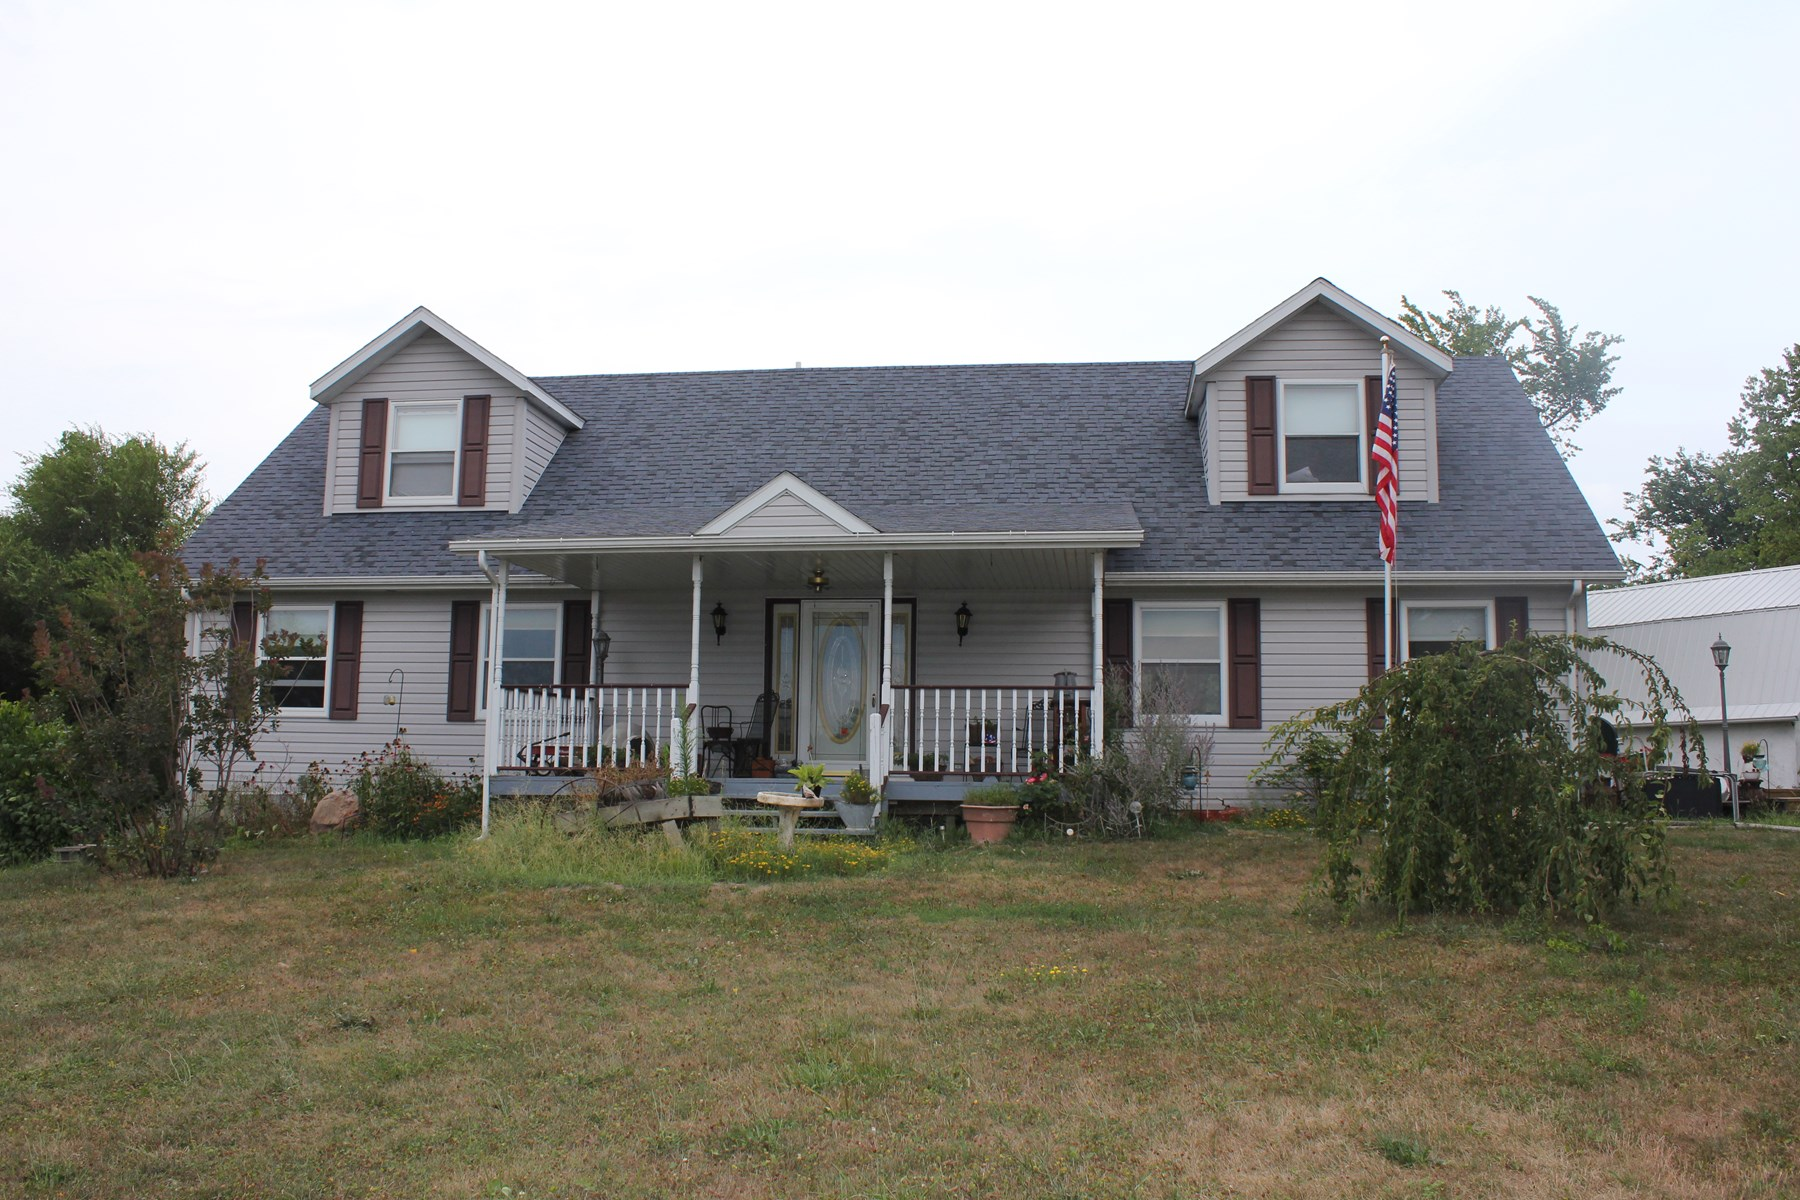 Country home for sale east of Unionville MO on 2 acres m/l